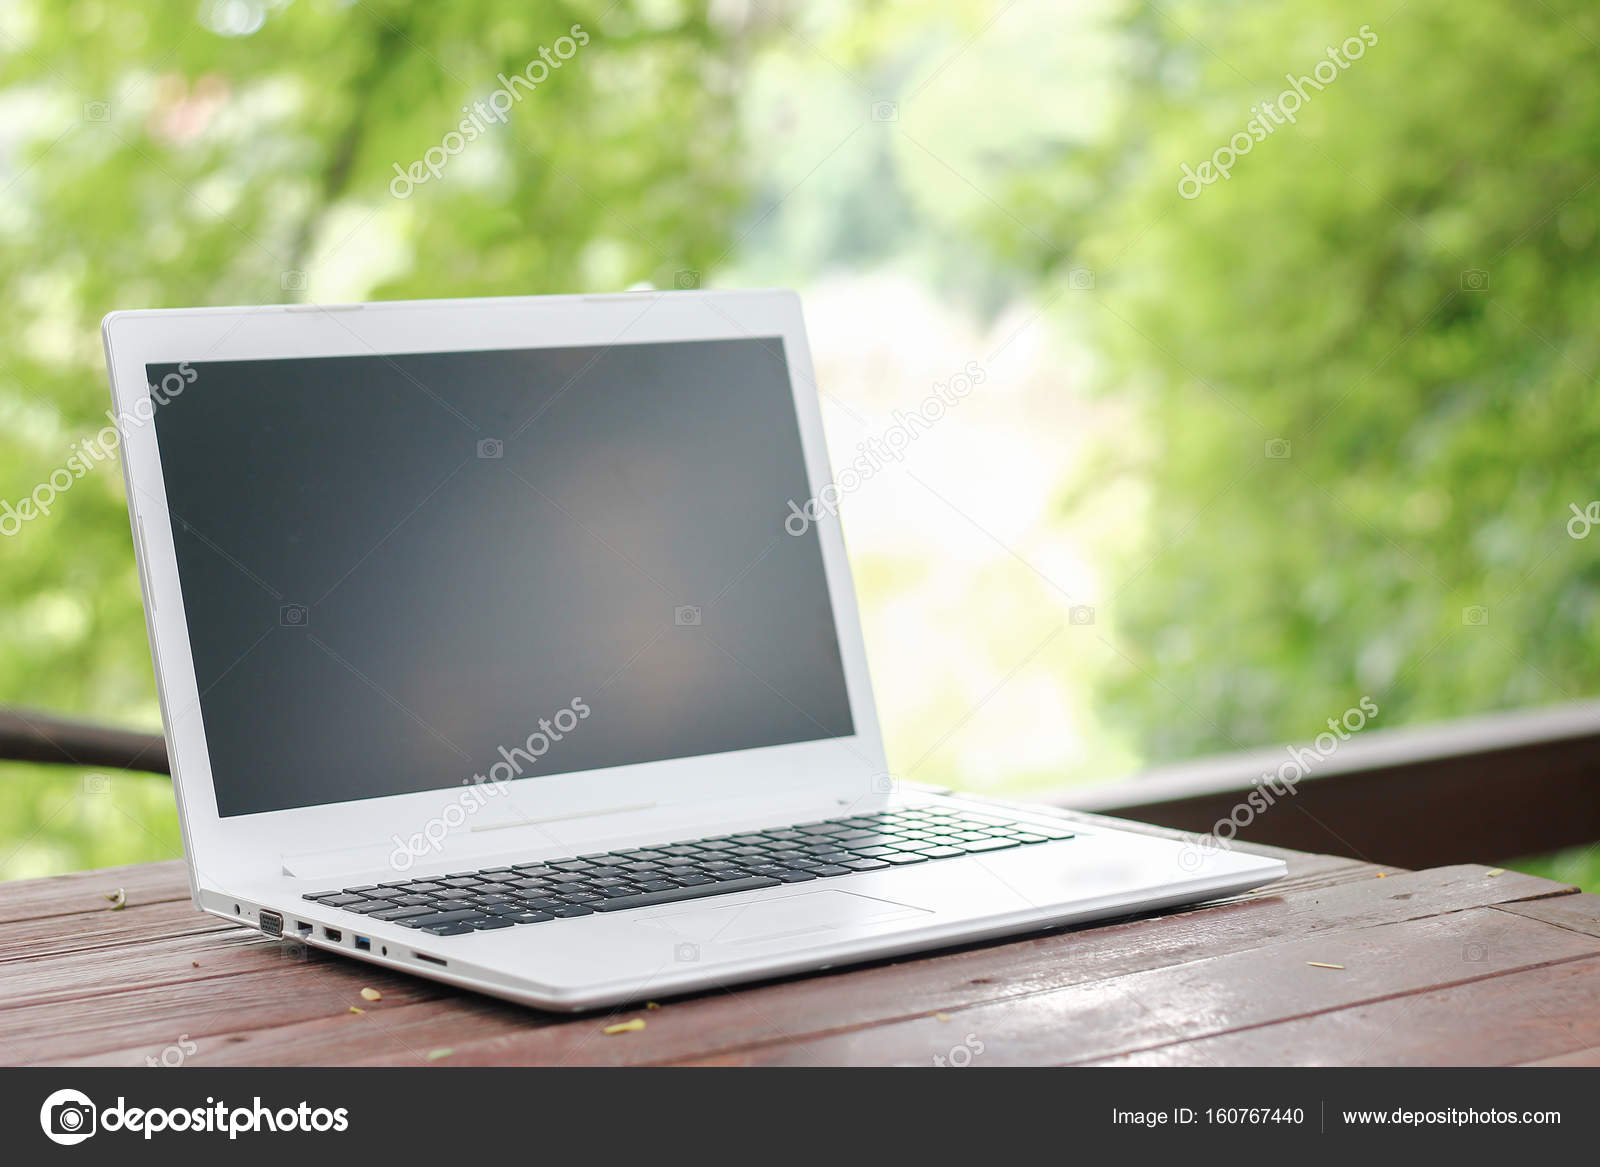 Computer Laptop With Blank Back Screen On Wooden Table With Green Garden  Nature Background U2014 Photo By Singkamc